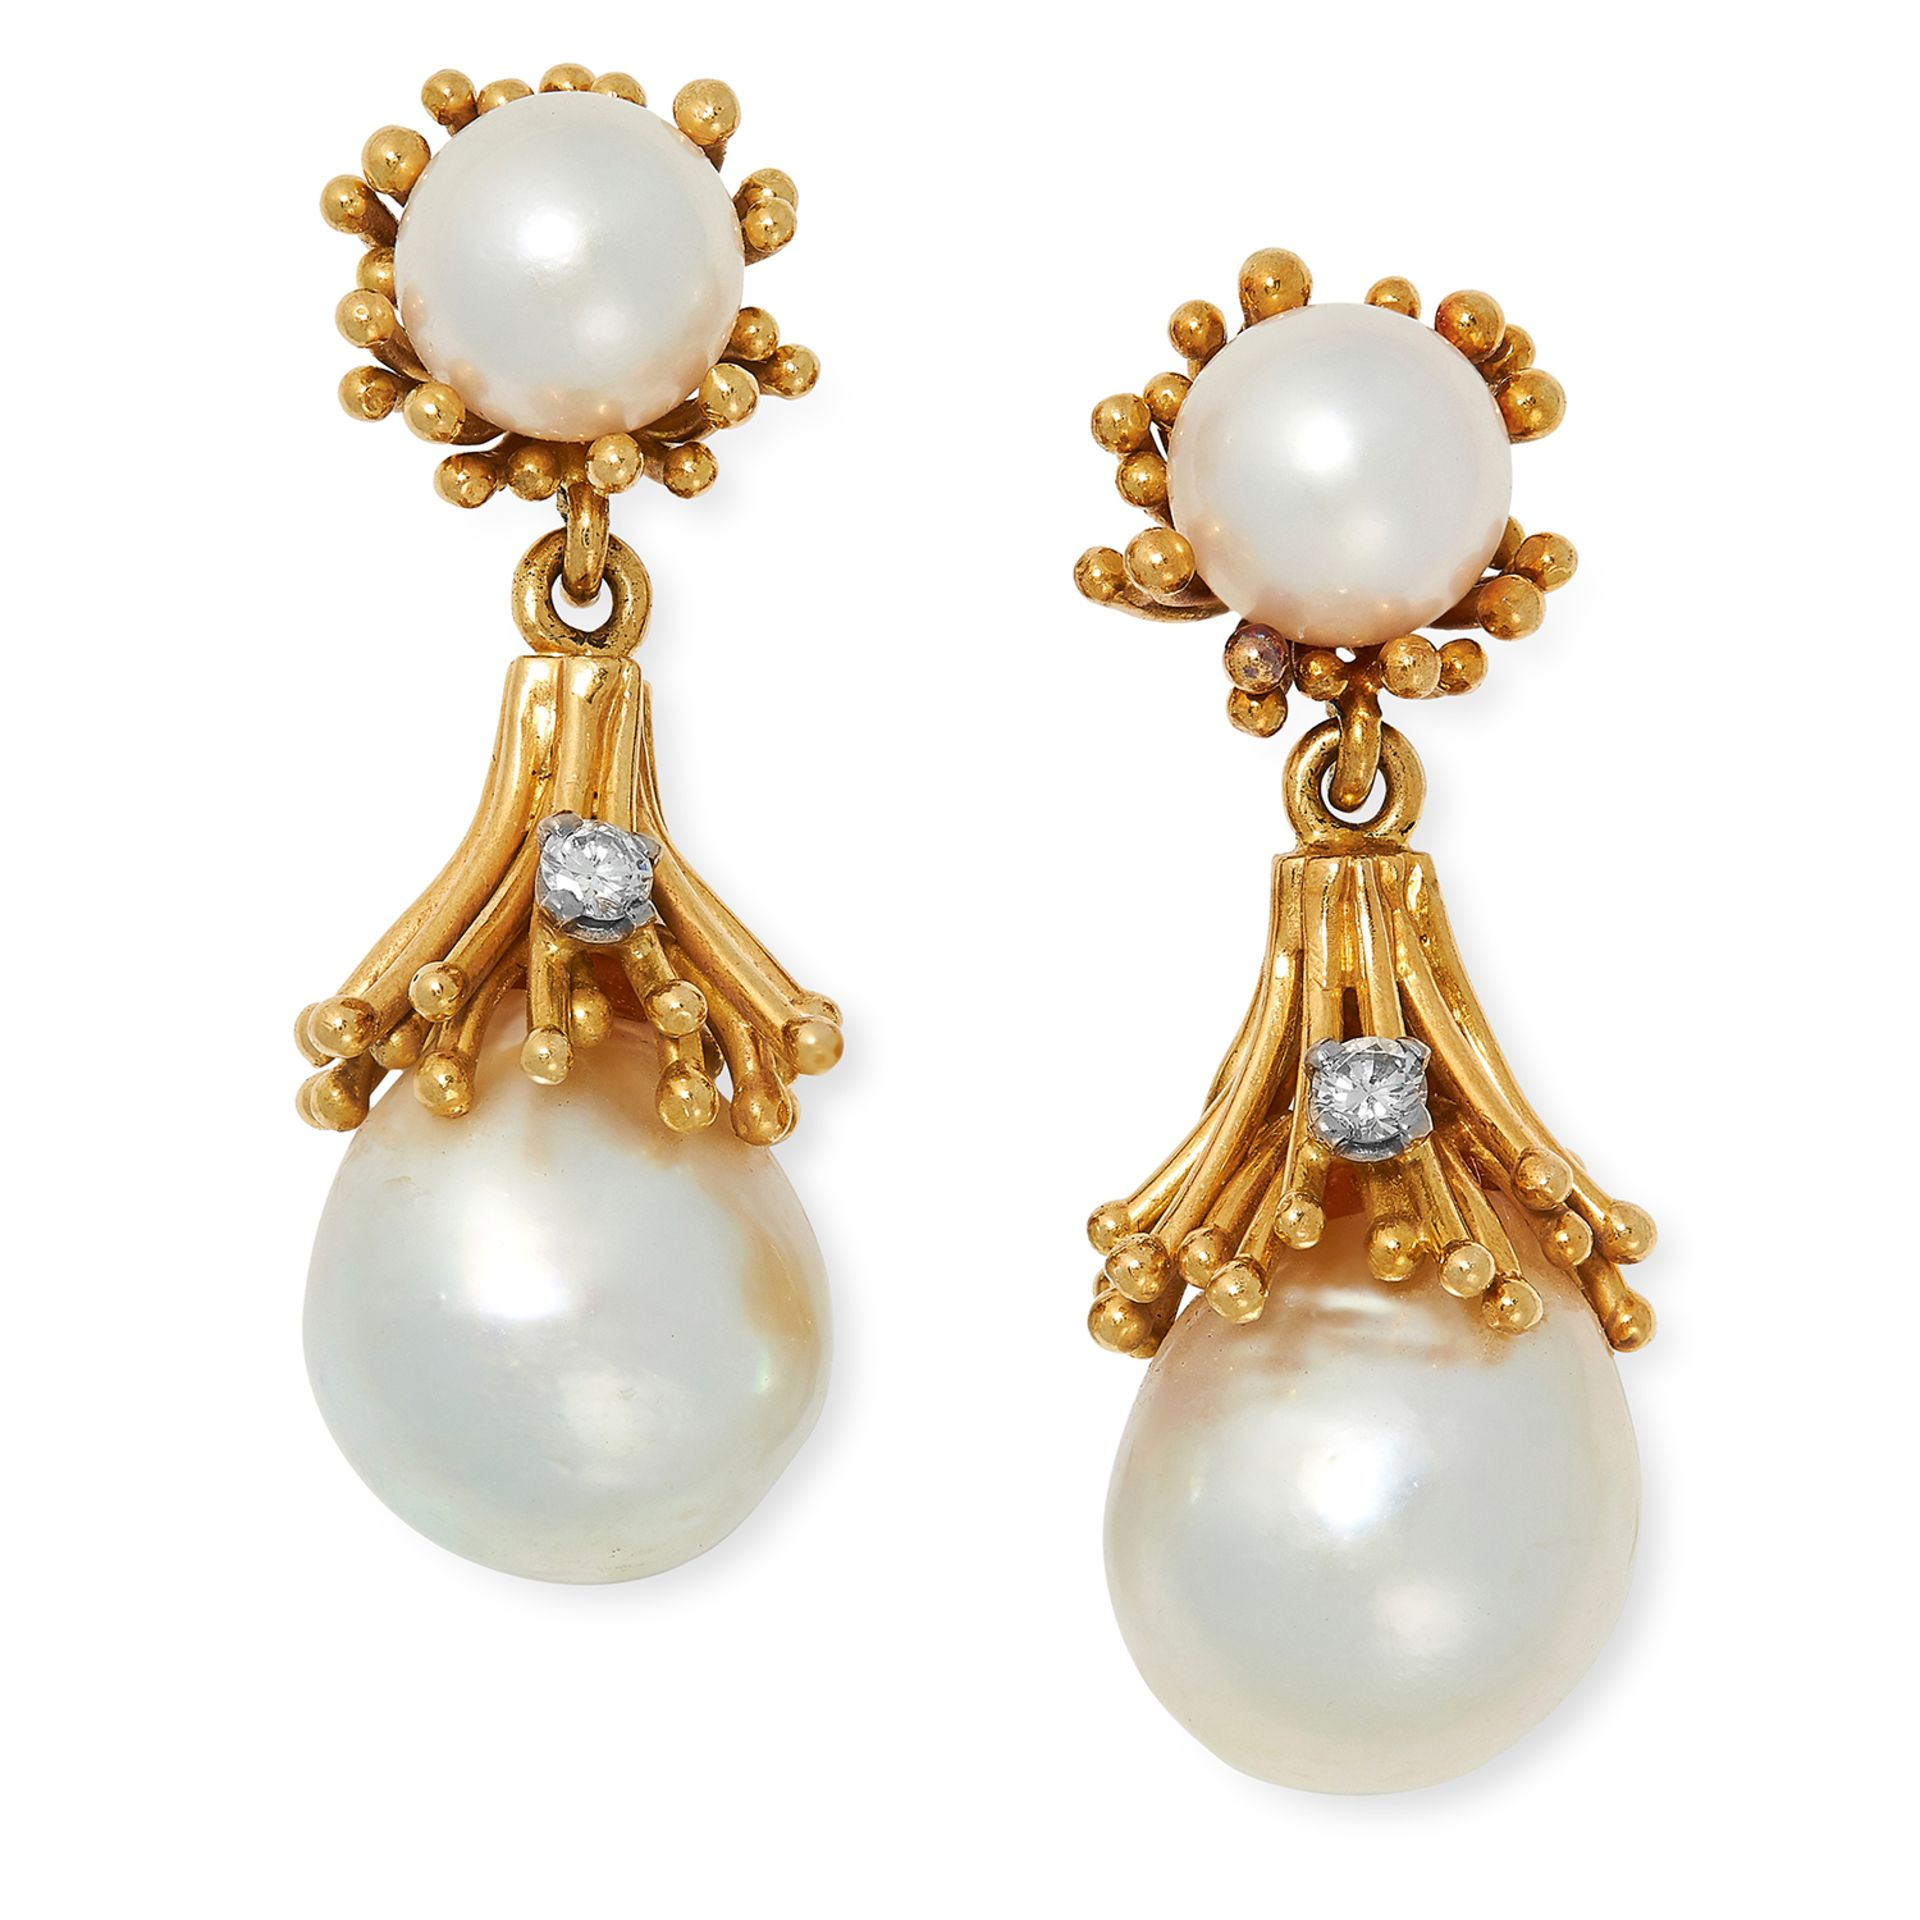 VINTAGE PEARL AND DIAMOND DROP EARRINGS, CIRCA 1970 each set with two pearls and a round cut